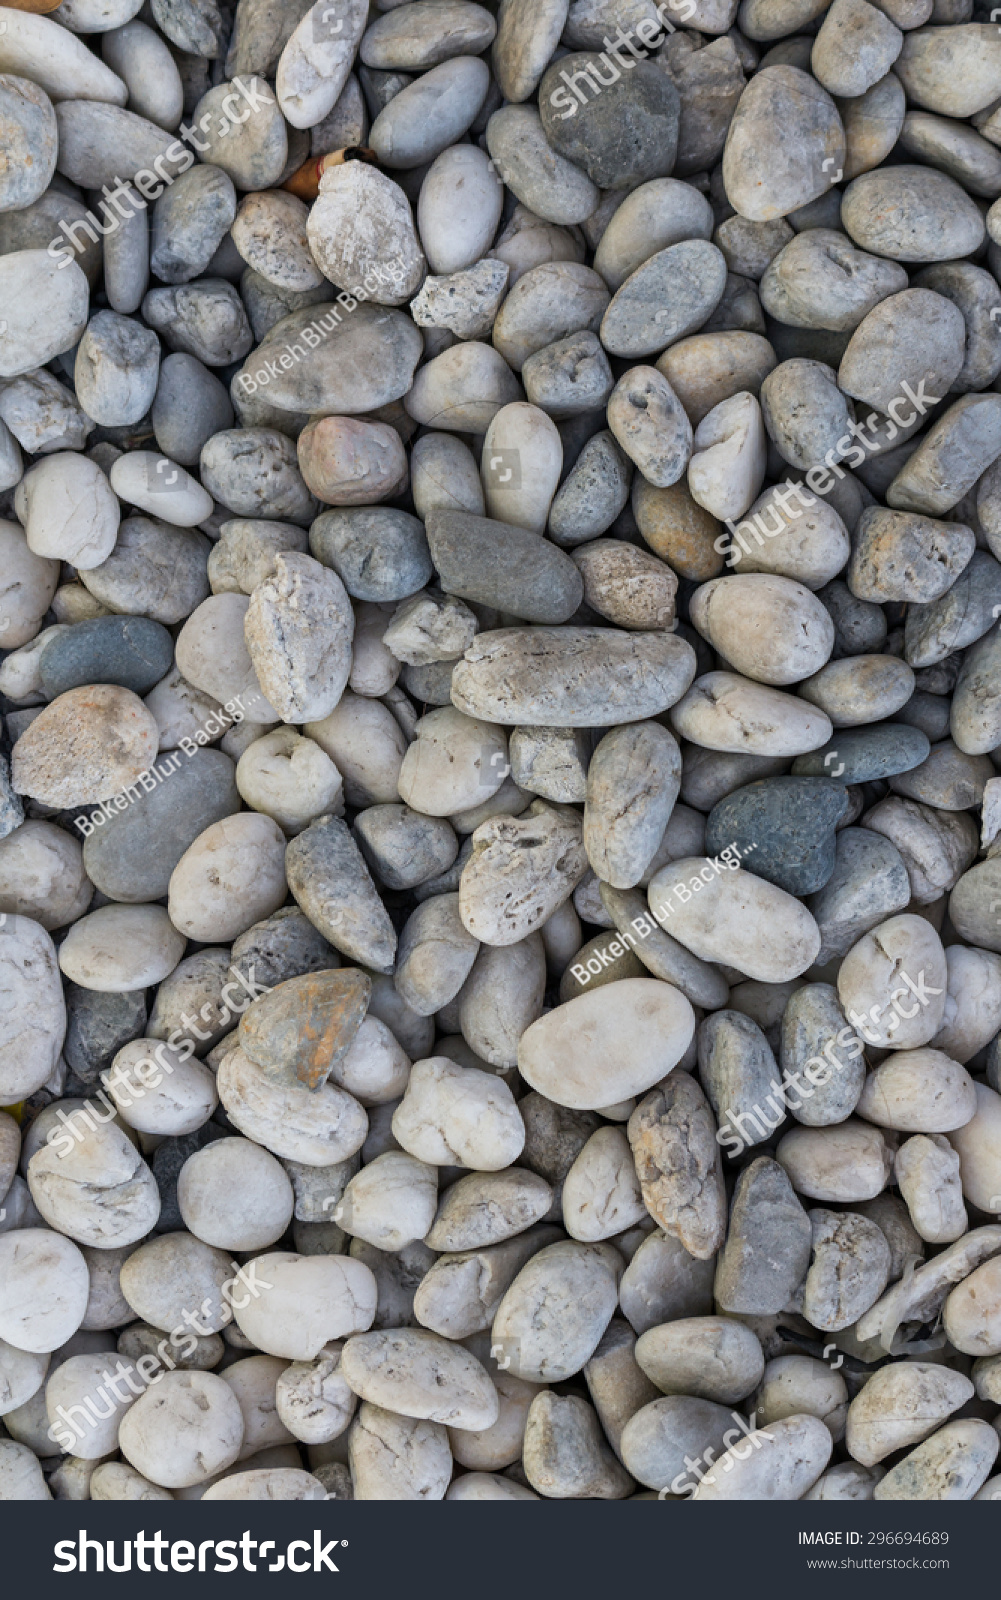 Smooth shaped white stones surface texture background stock photo - White River Stone Texture Background